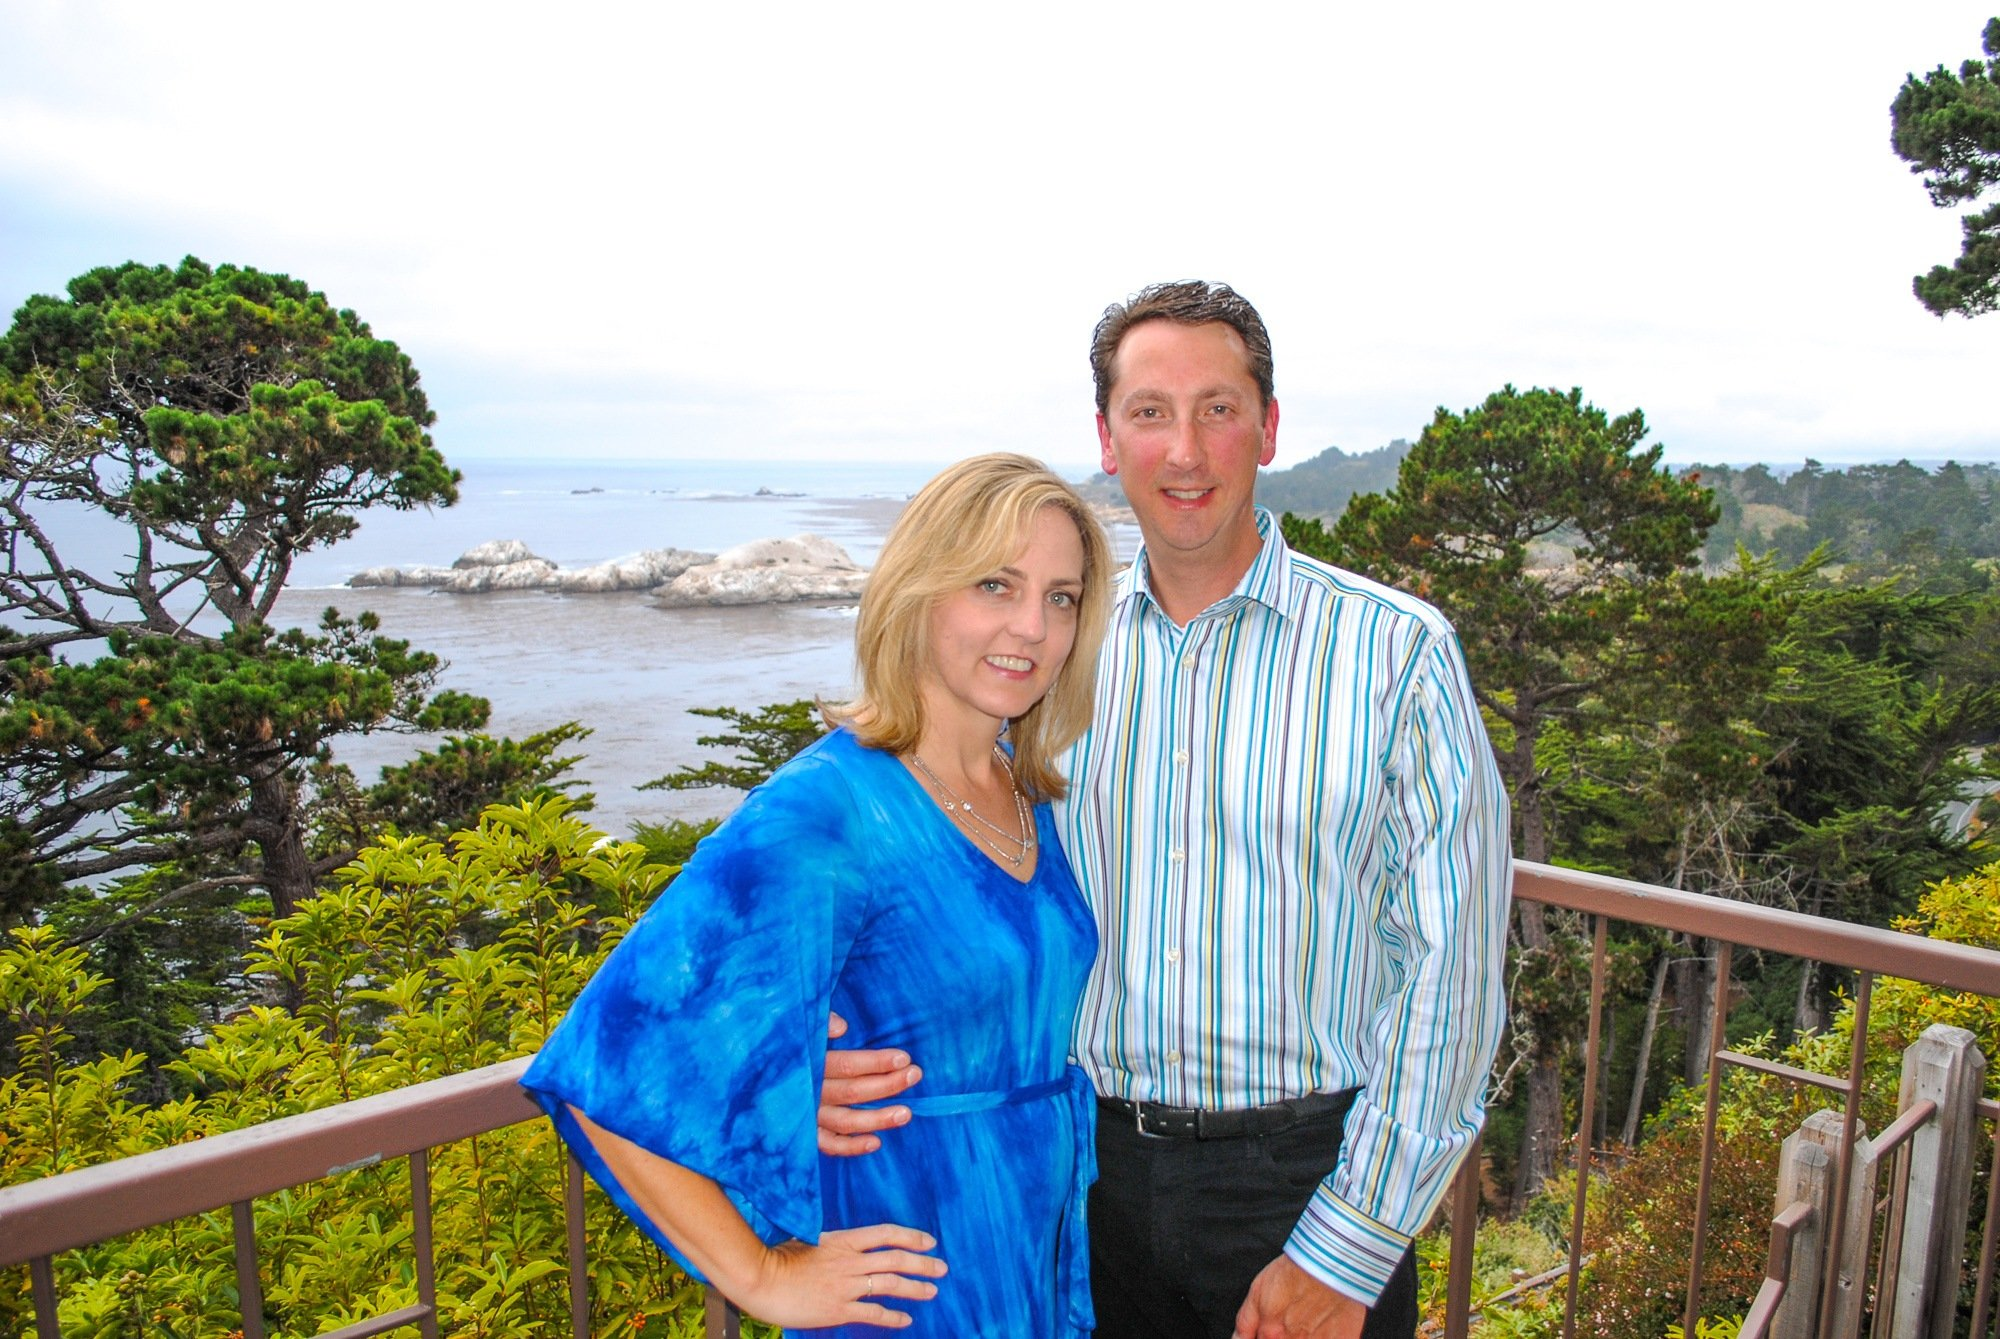 Couple on a romantic date at the Pacific's Edge Restaurant at Hyatt Carmel Highlands